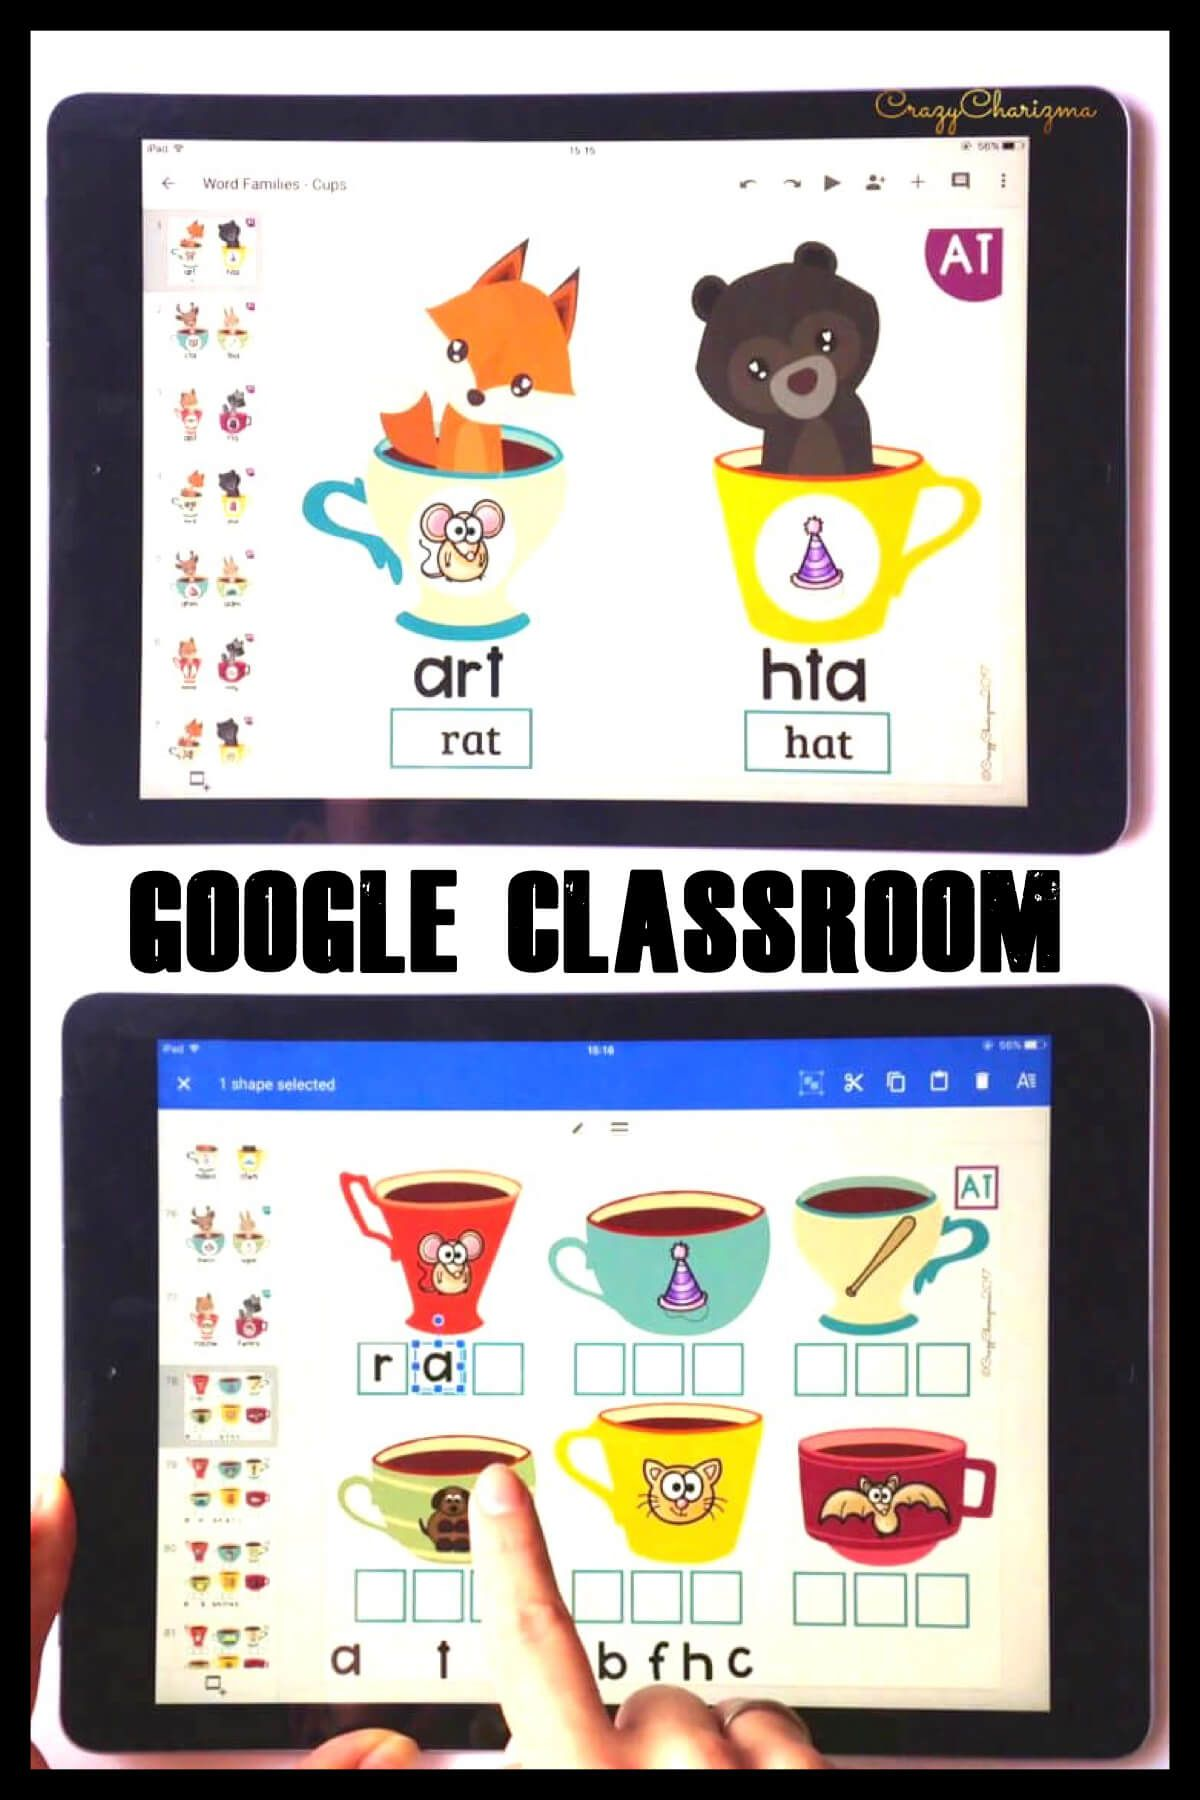 Practice CVC words, CVCe words and other phonics in a fun way! Train kids to type words and add the missing initial/medial/final letters to the words. Google Classroom in kindergarten can be fun!